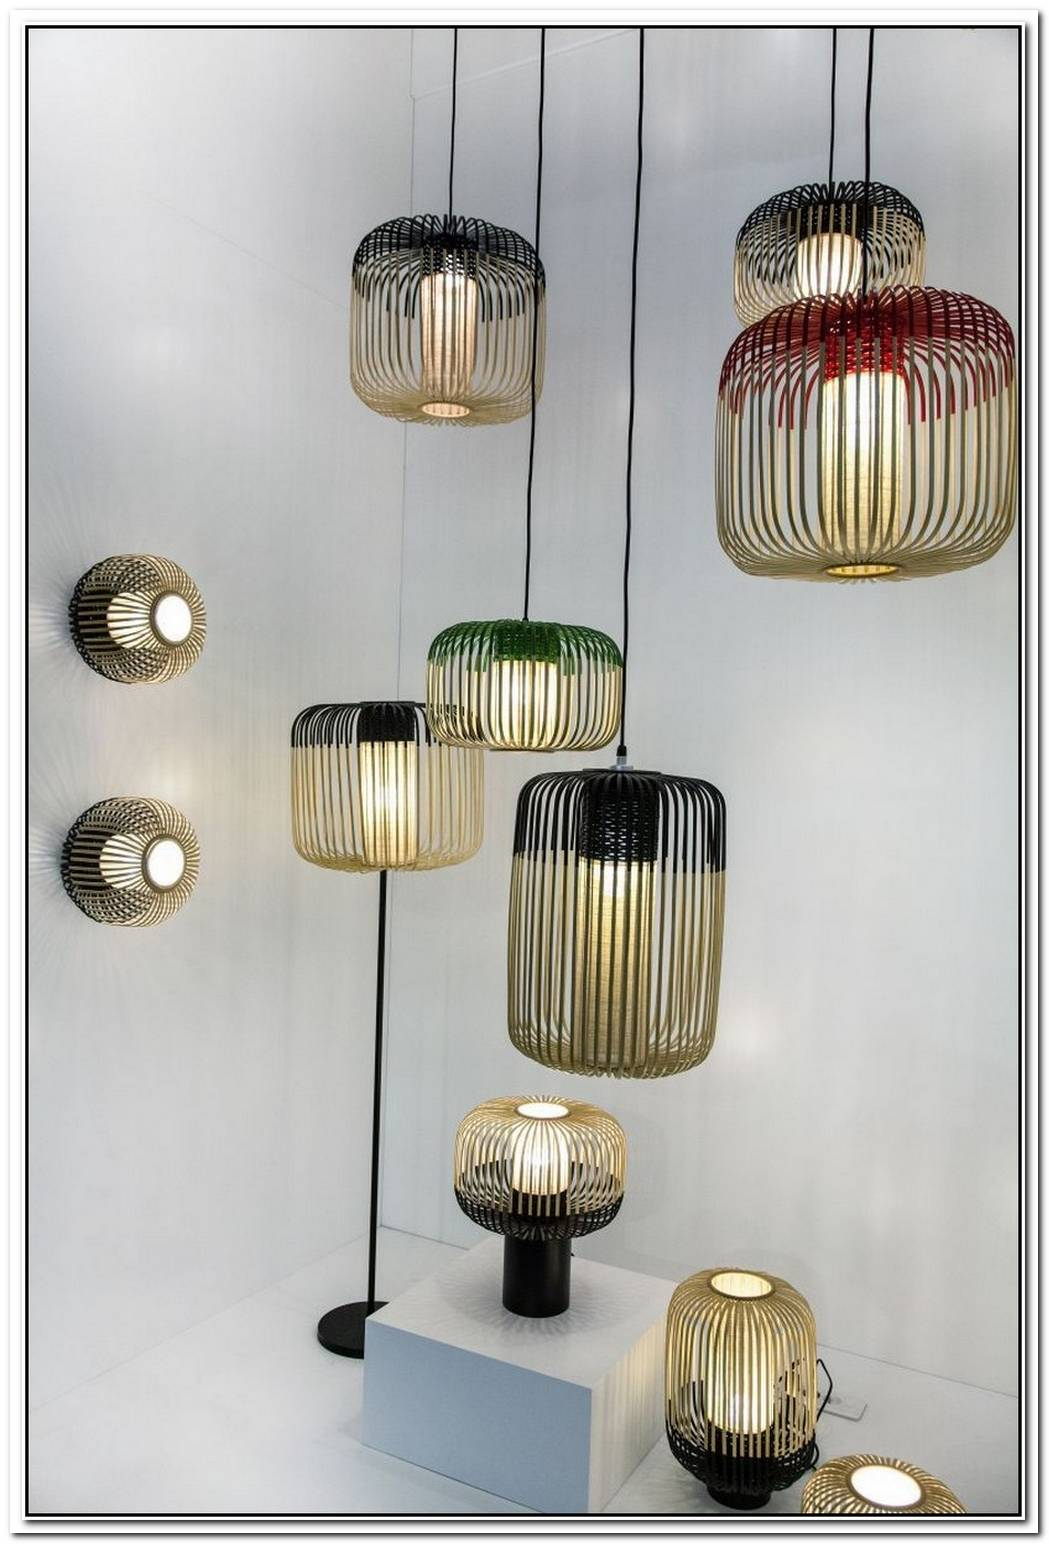 Hanging Lights Draw The Eye Up In Style